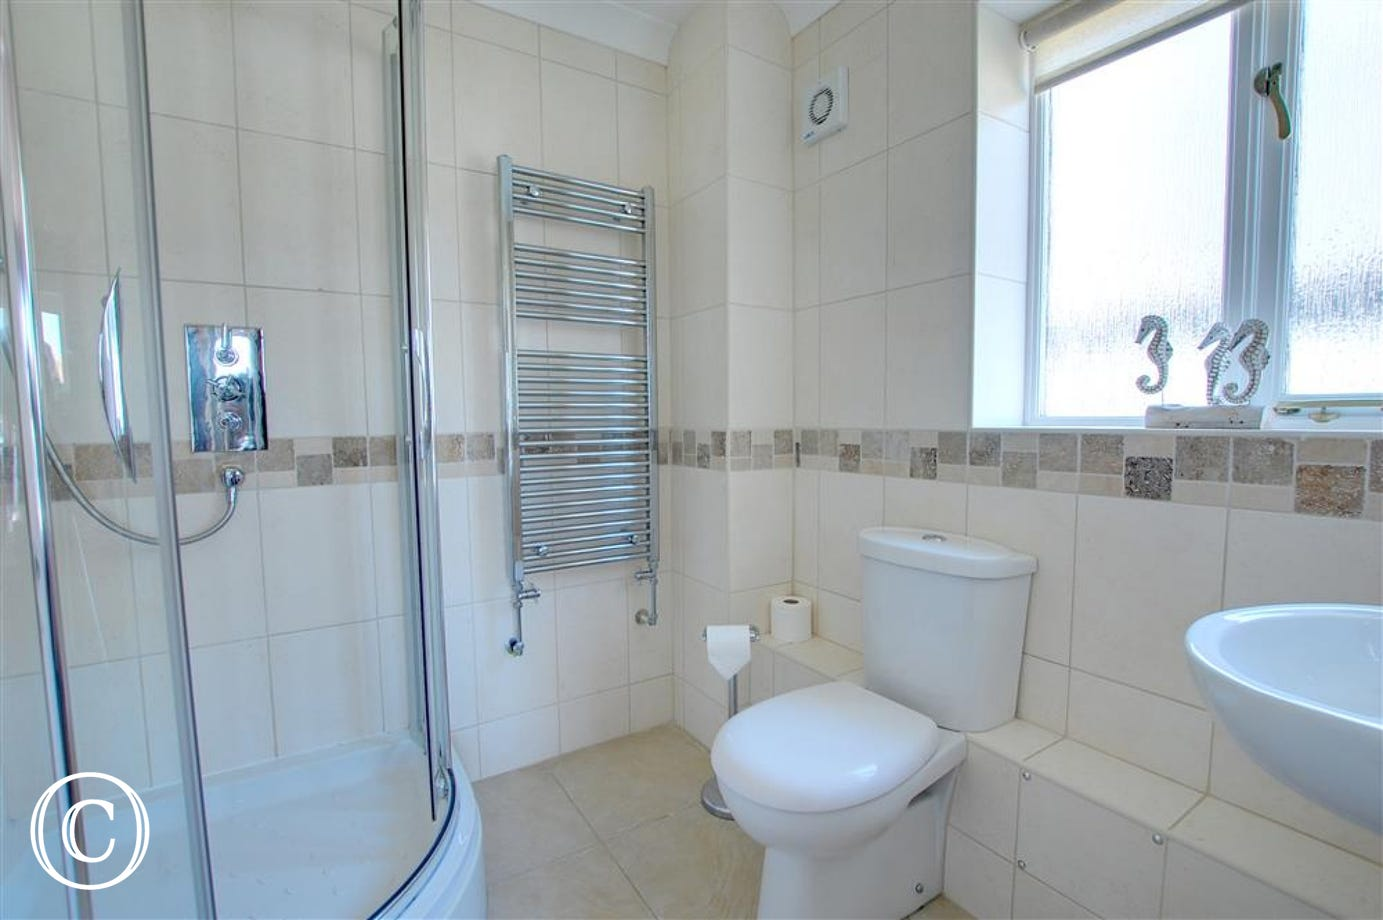 En-suite bathroom with shower cubicle, wc and wash hand basin.